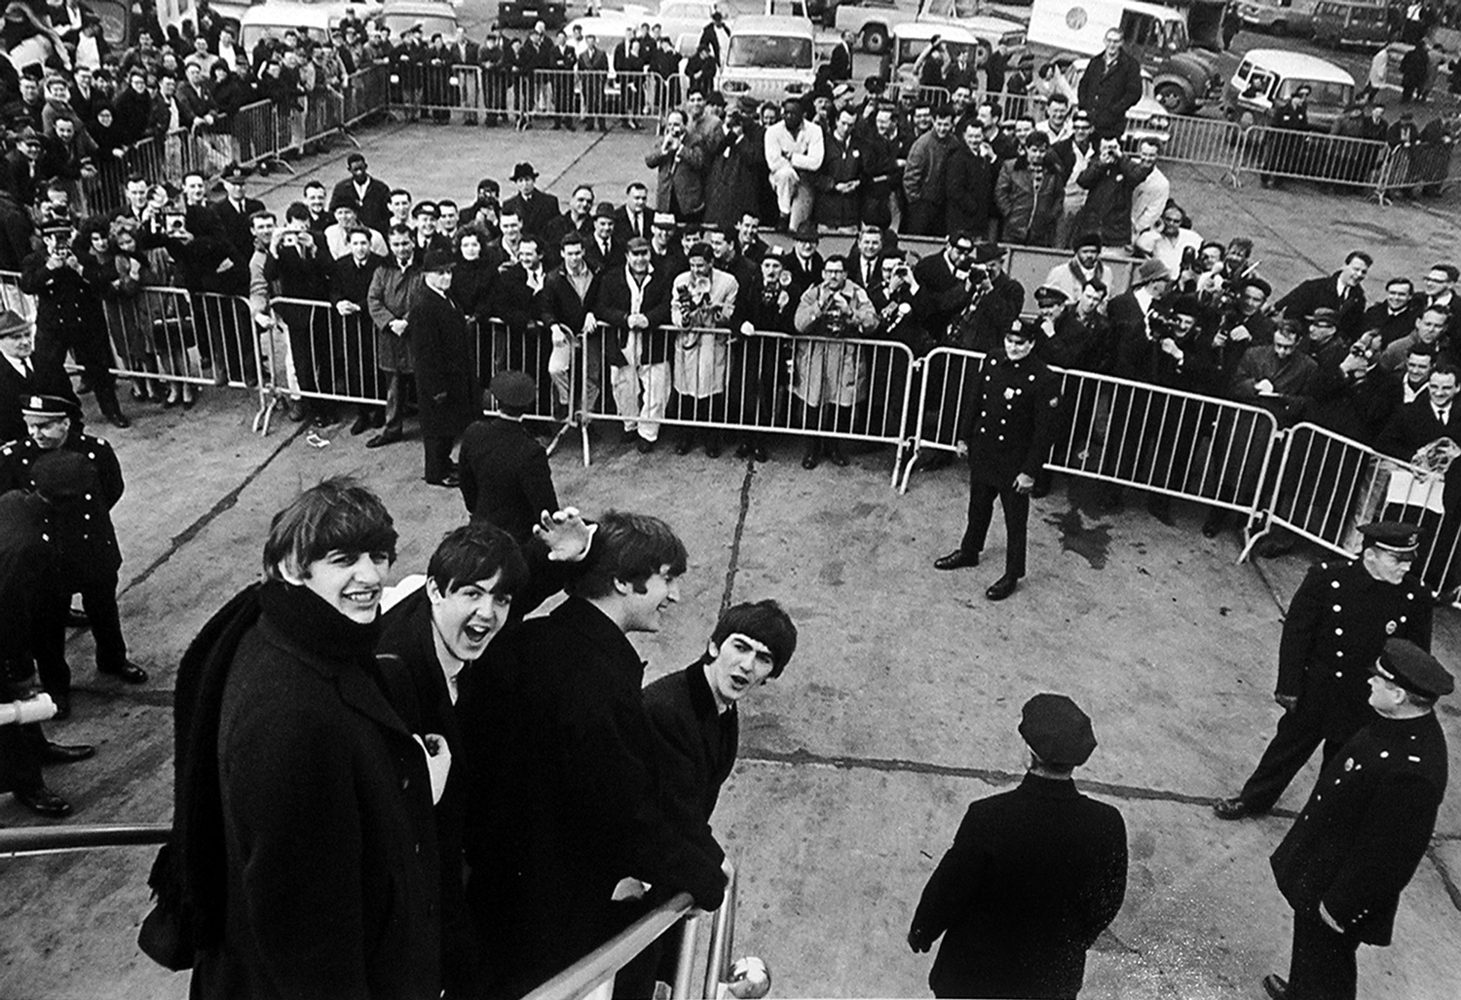 Beatles arriving in New York